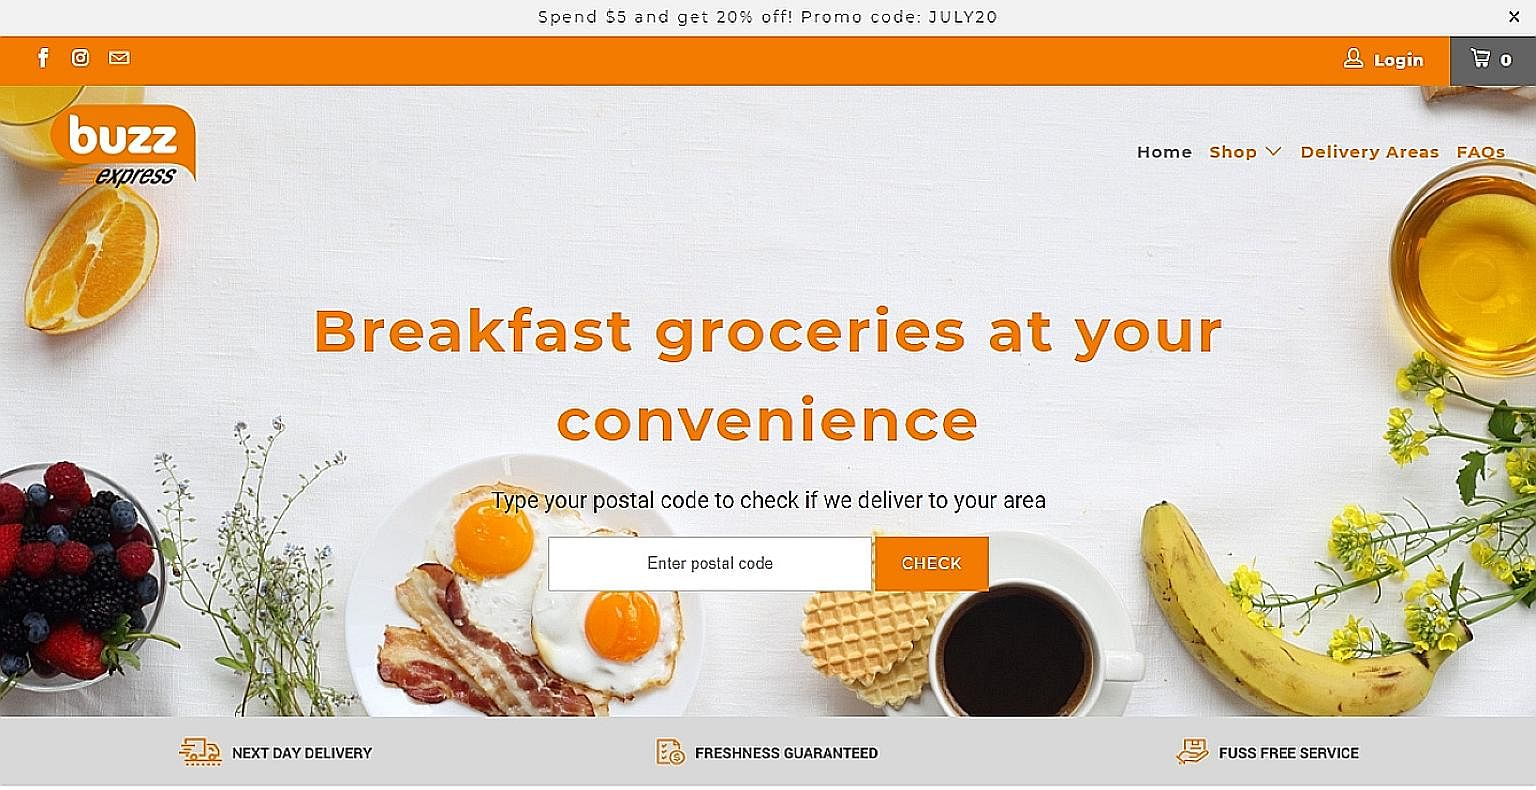 From Aug 5, people in the newly covered areas can place breakfast orders online for them to be delivered the next day.